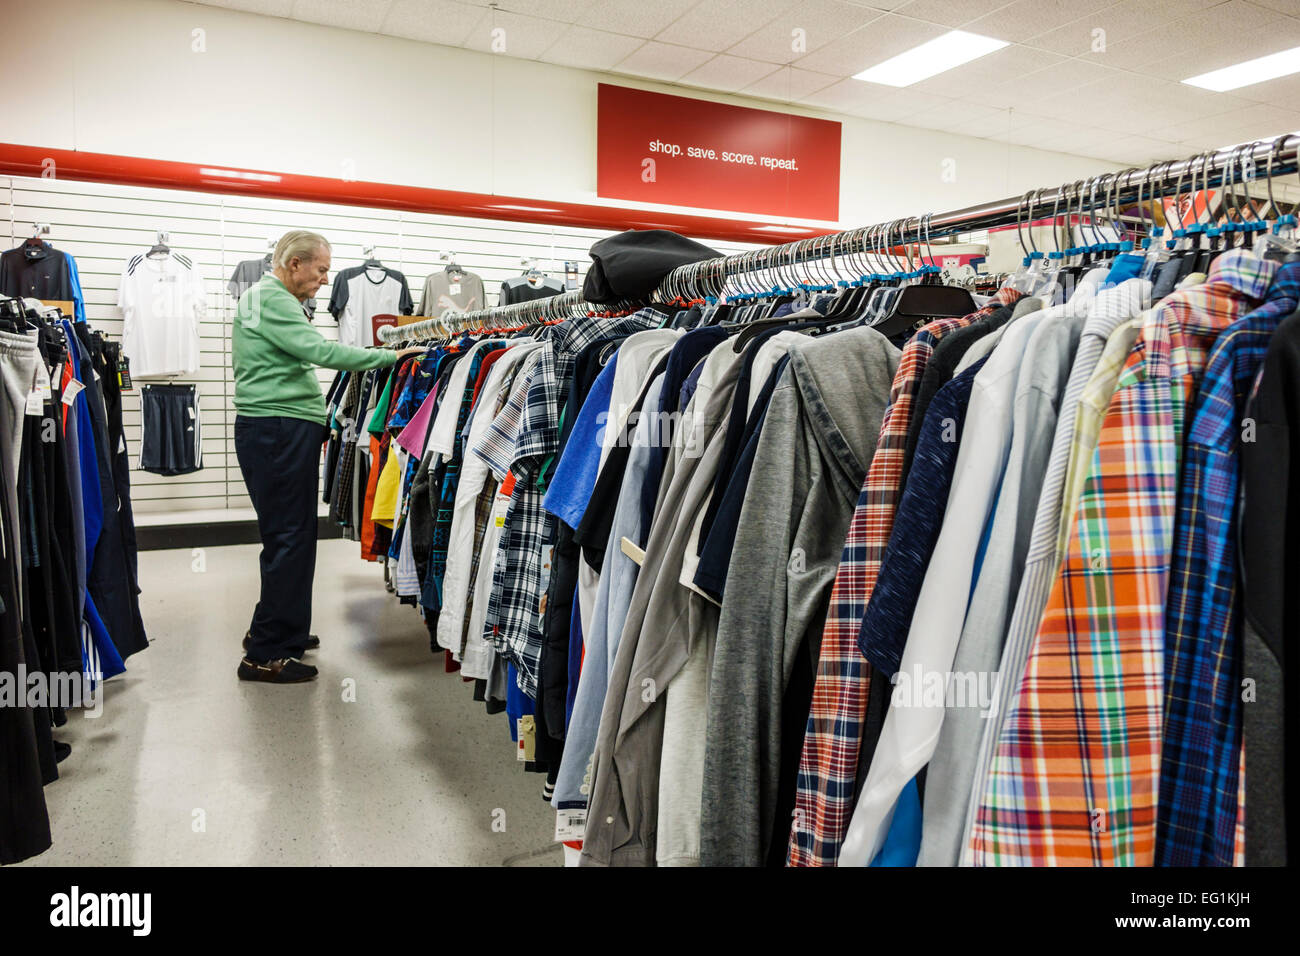 TJ Maxx Clothing